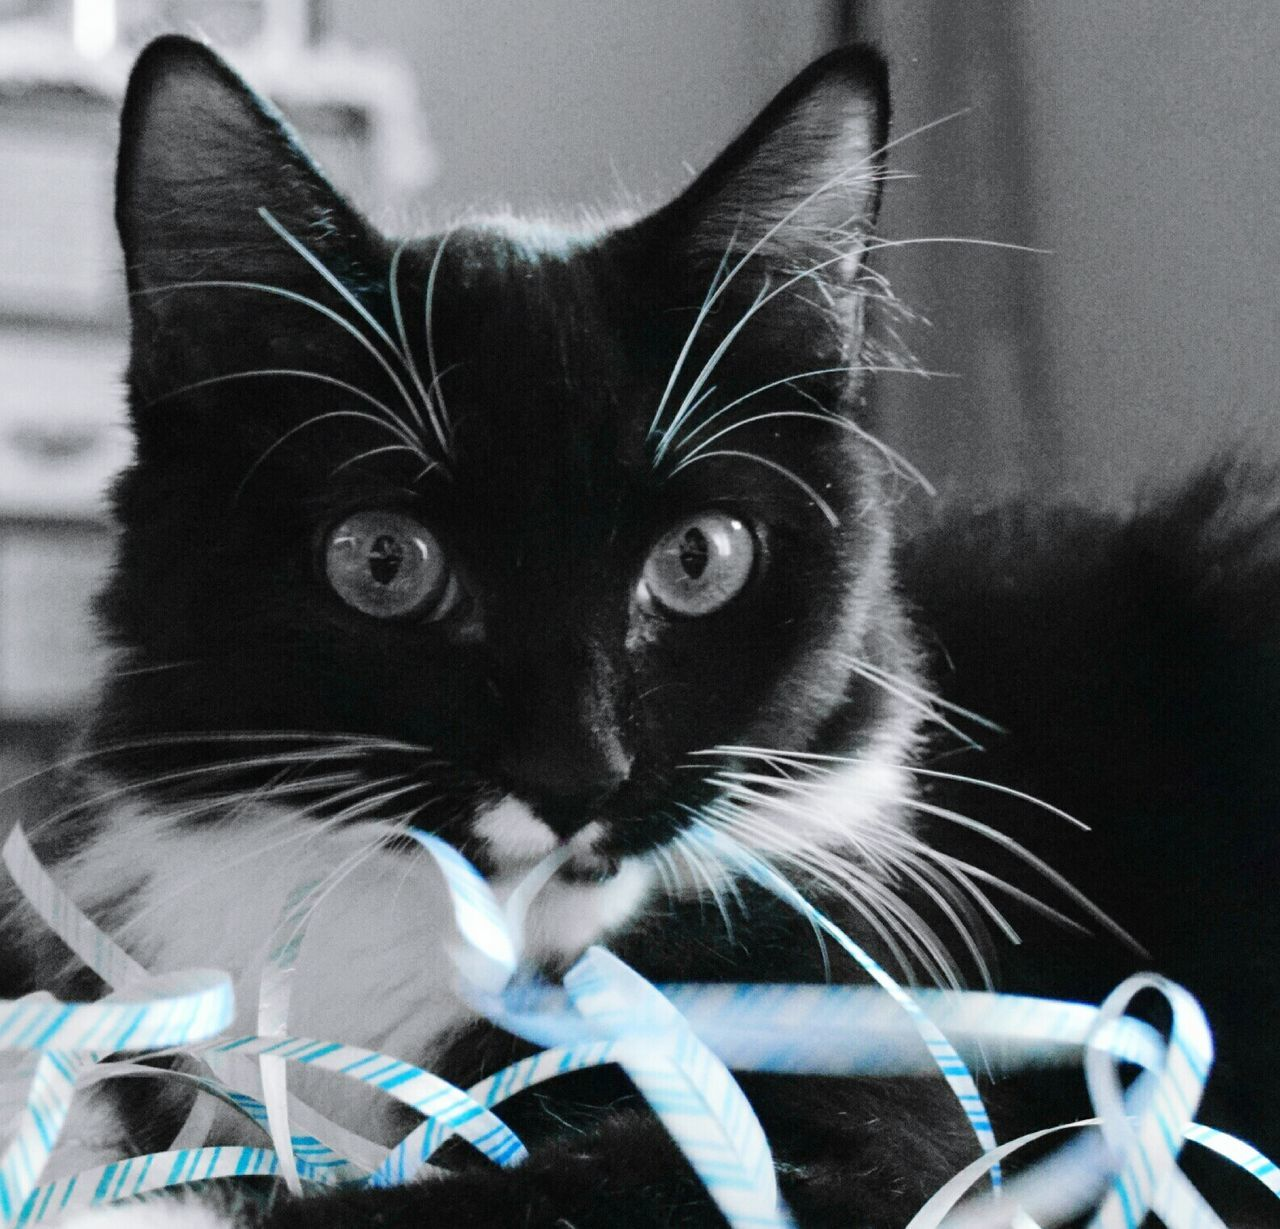 Kittykitty Kitty Time  Whisker Looking At Camera Yellow Eyes Black Color Domestic Animals Pets Domestic Cat Happigramma EyeEm Gallery Gettyimages Thesmallestlittlethings Godsartwork EyeEm Best Shots Everythingisbeautiful Kitty Purrfect Purrfe Iseeinpictures Eyeem This Week Close-up Cats Cats Cats Of EyeEm cats